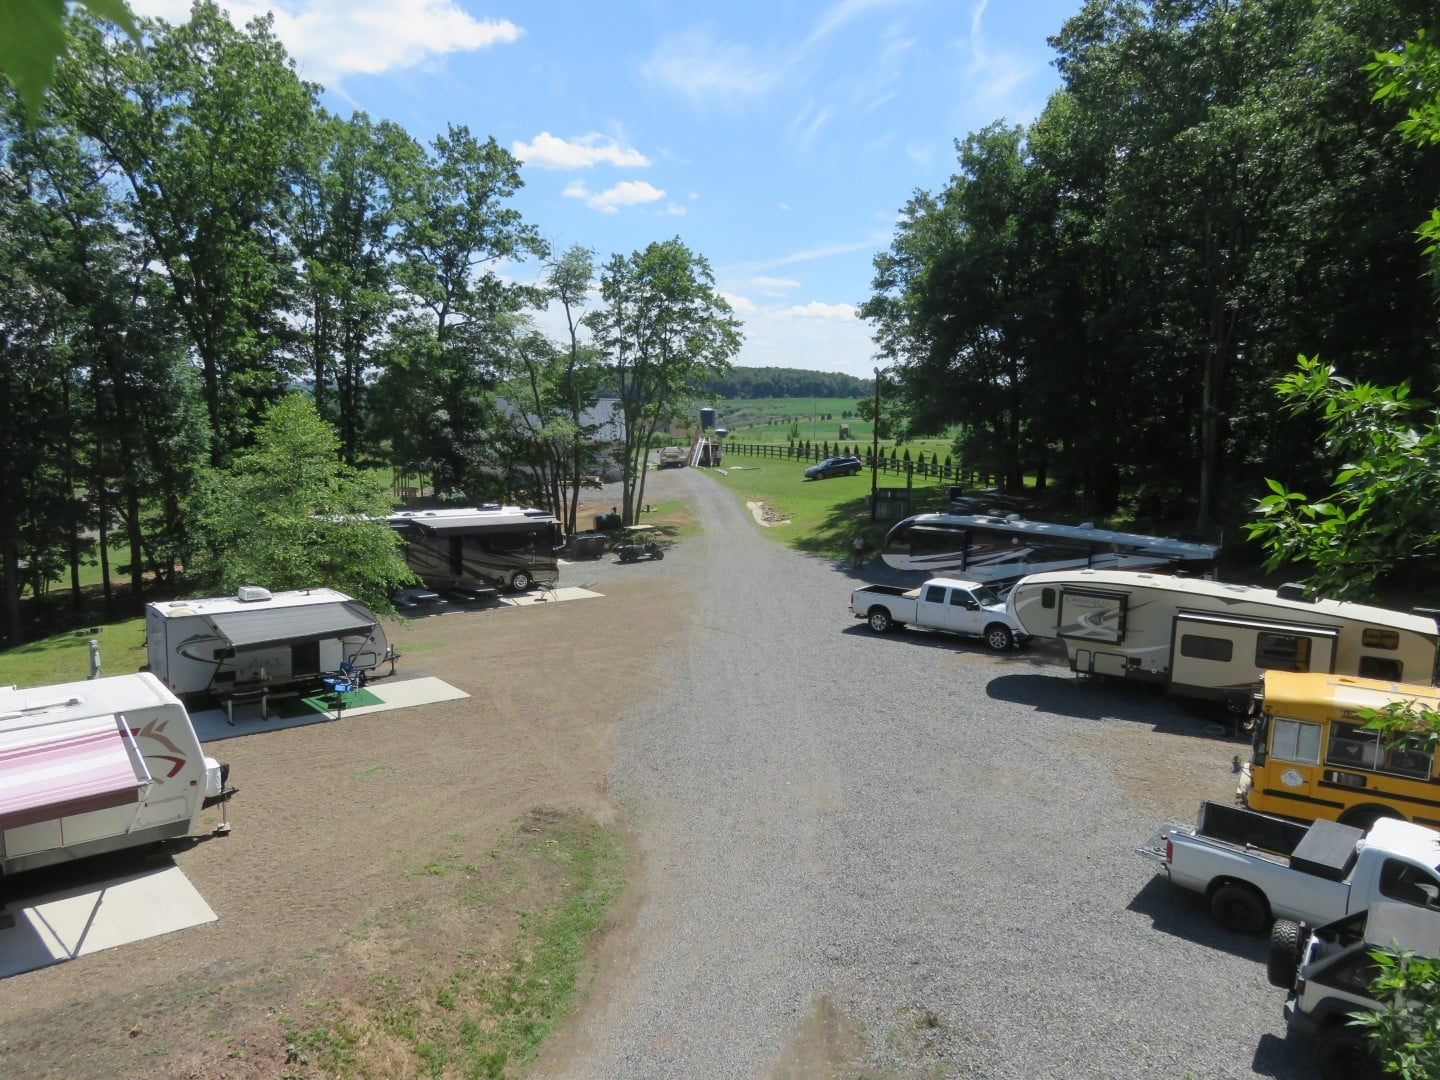 The campground full of volunteer campers